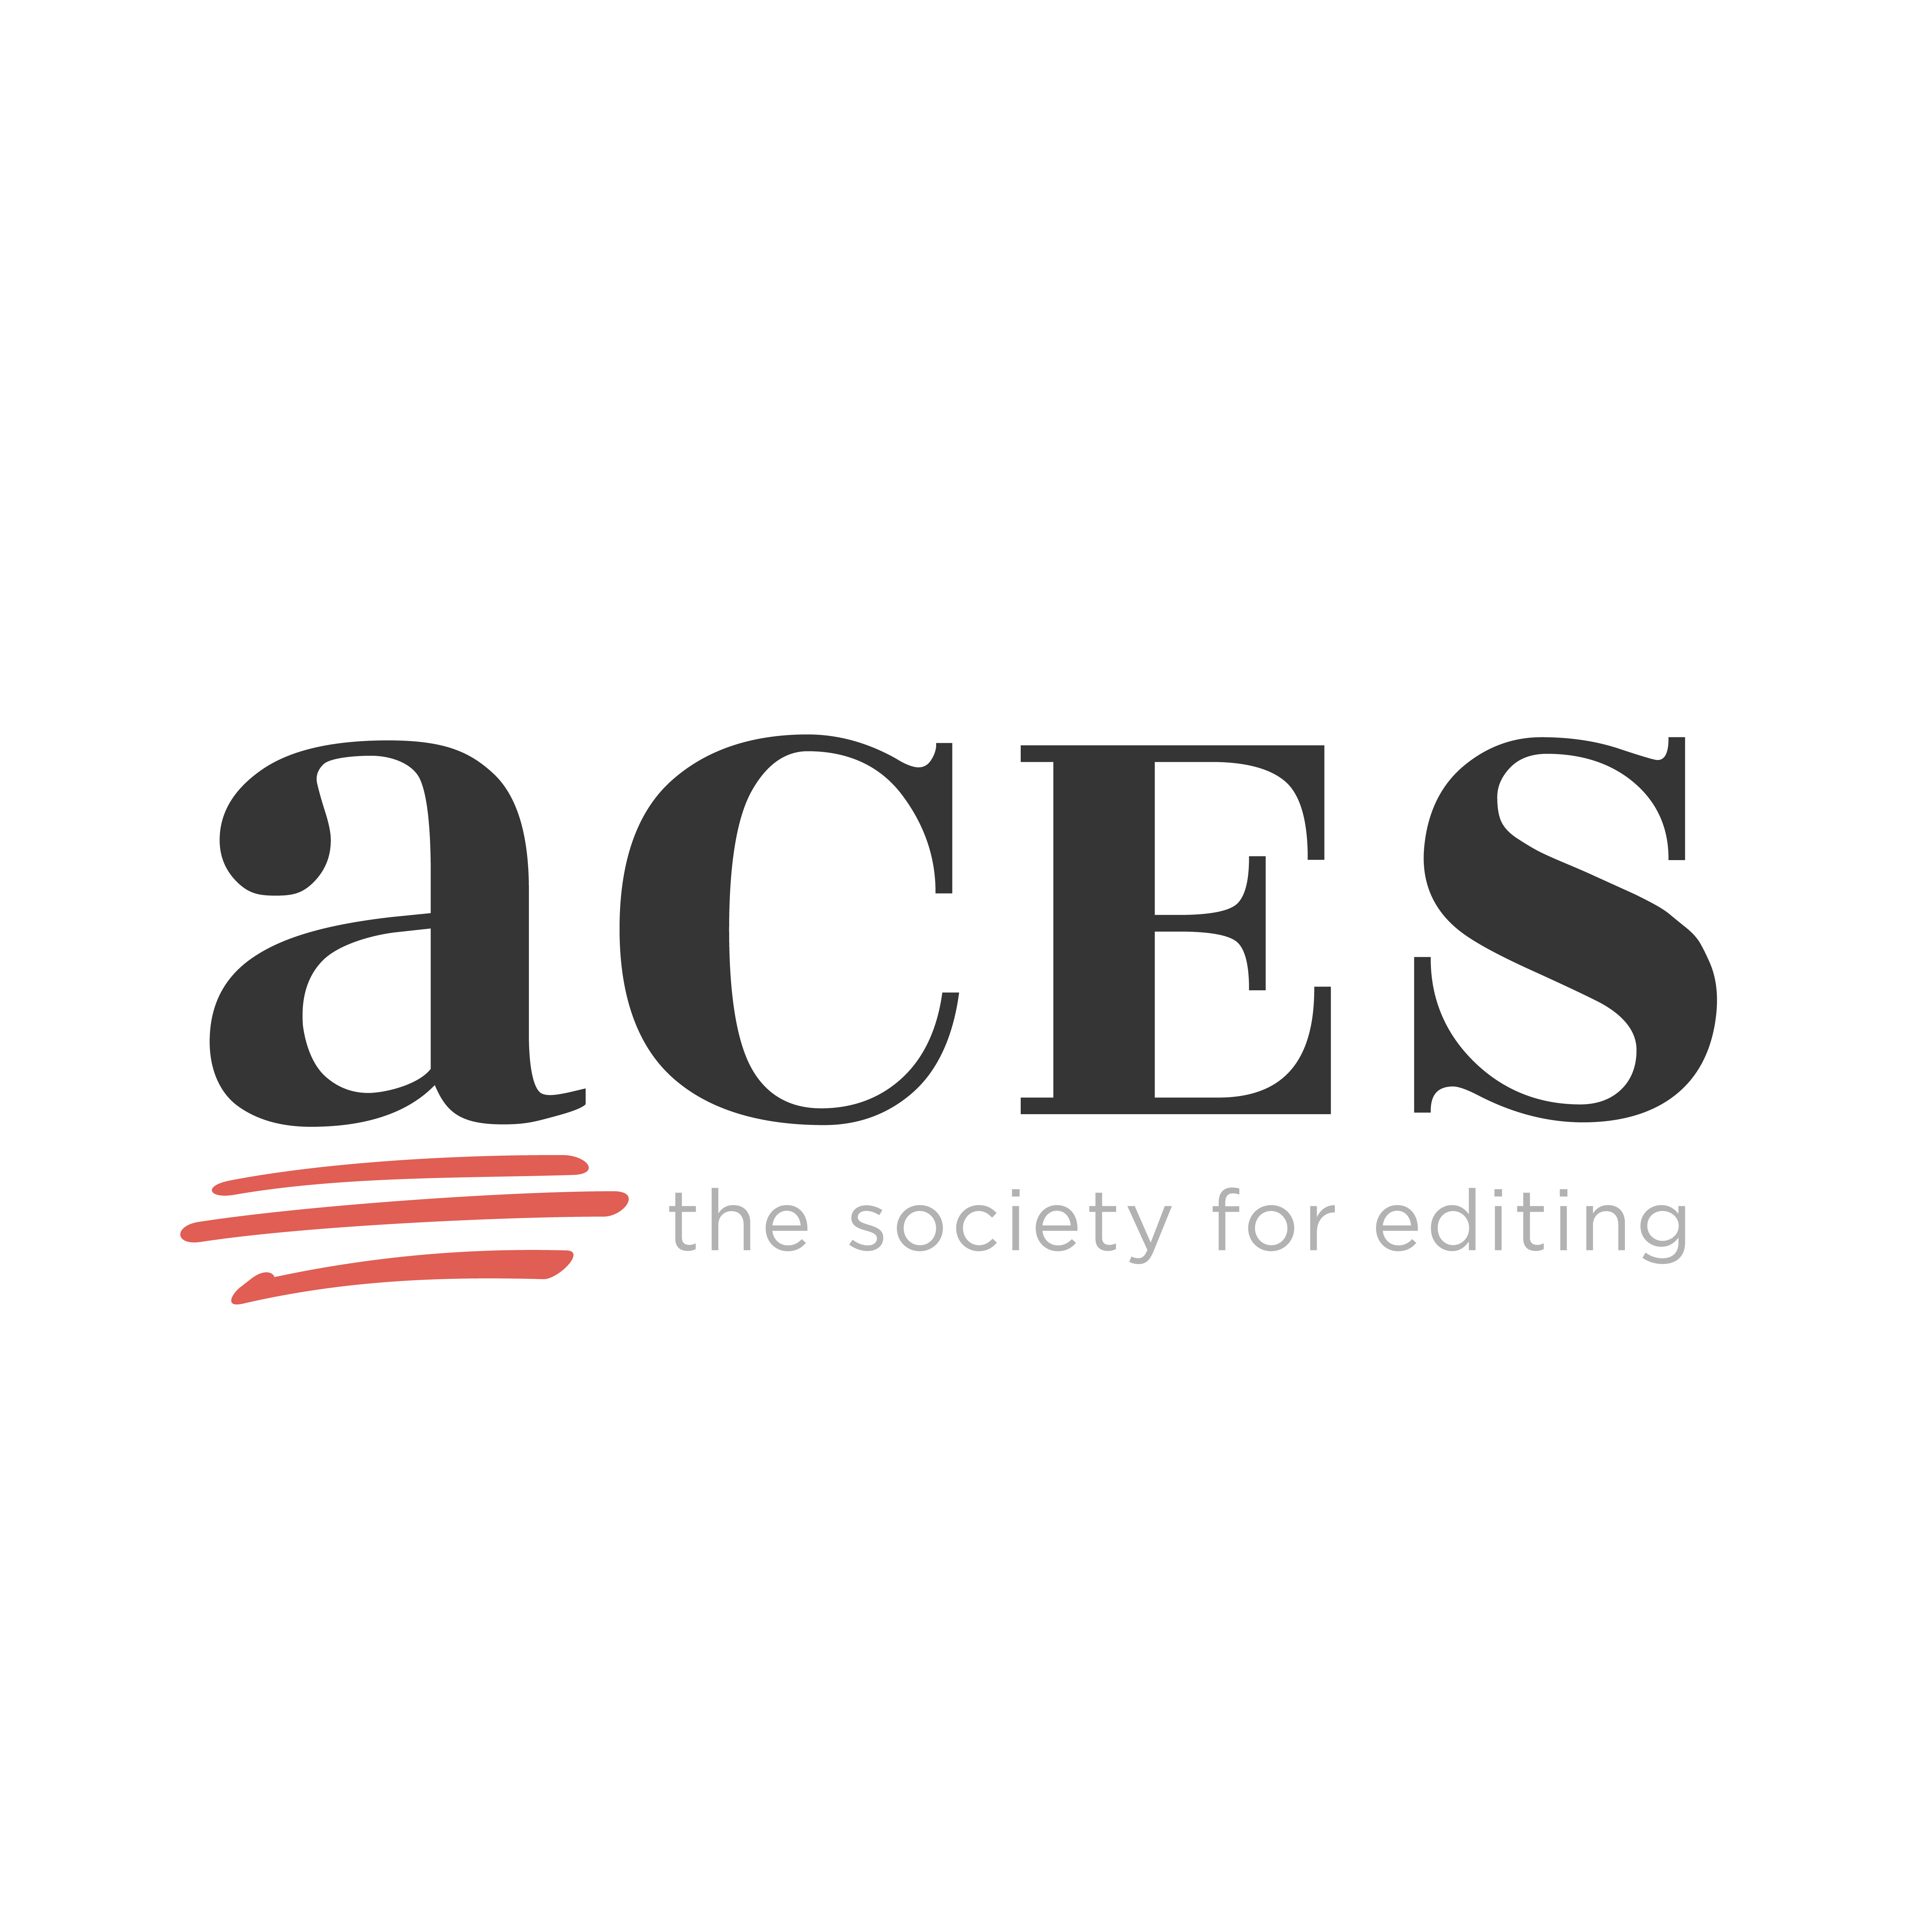 Logo of ACES (American Society for Editing)